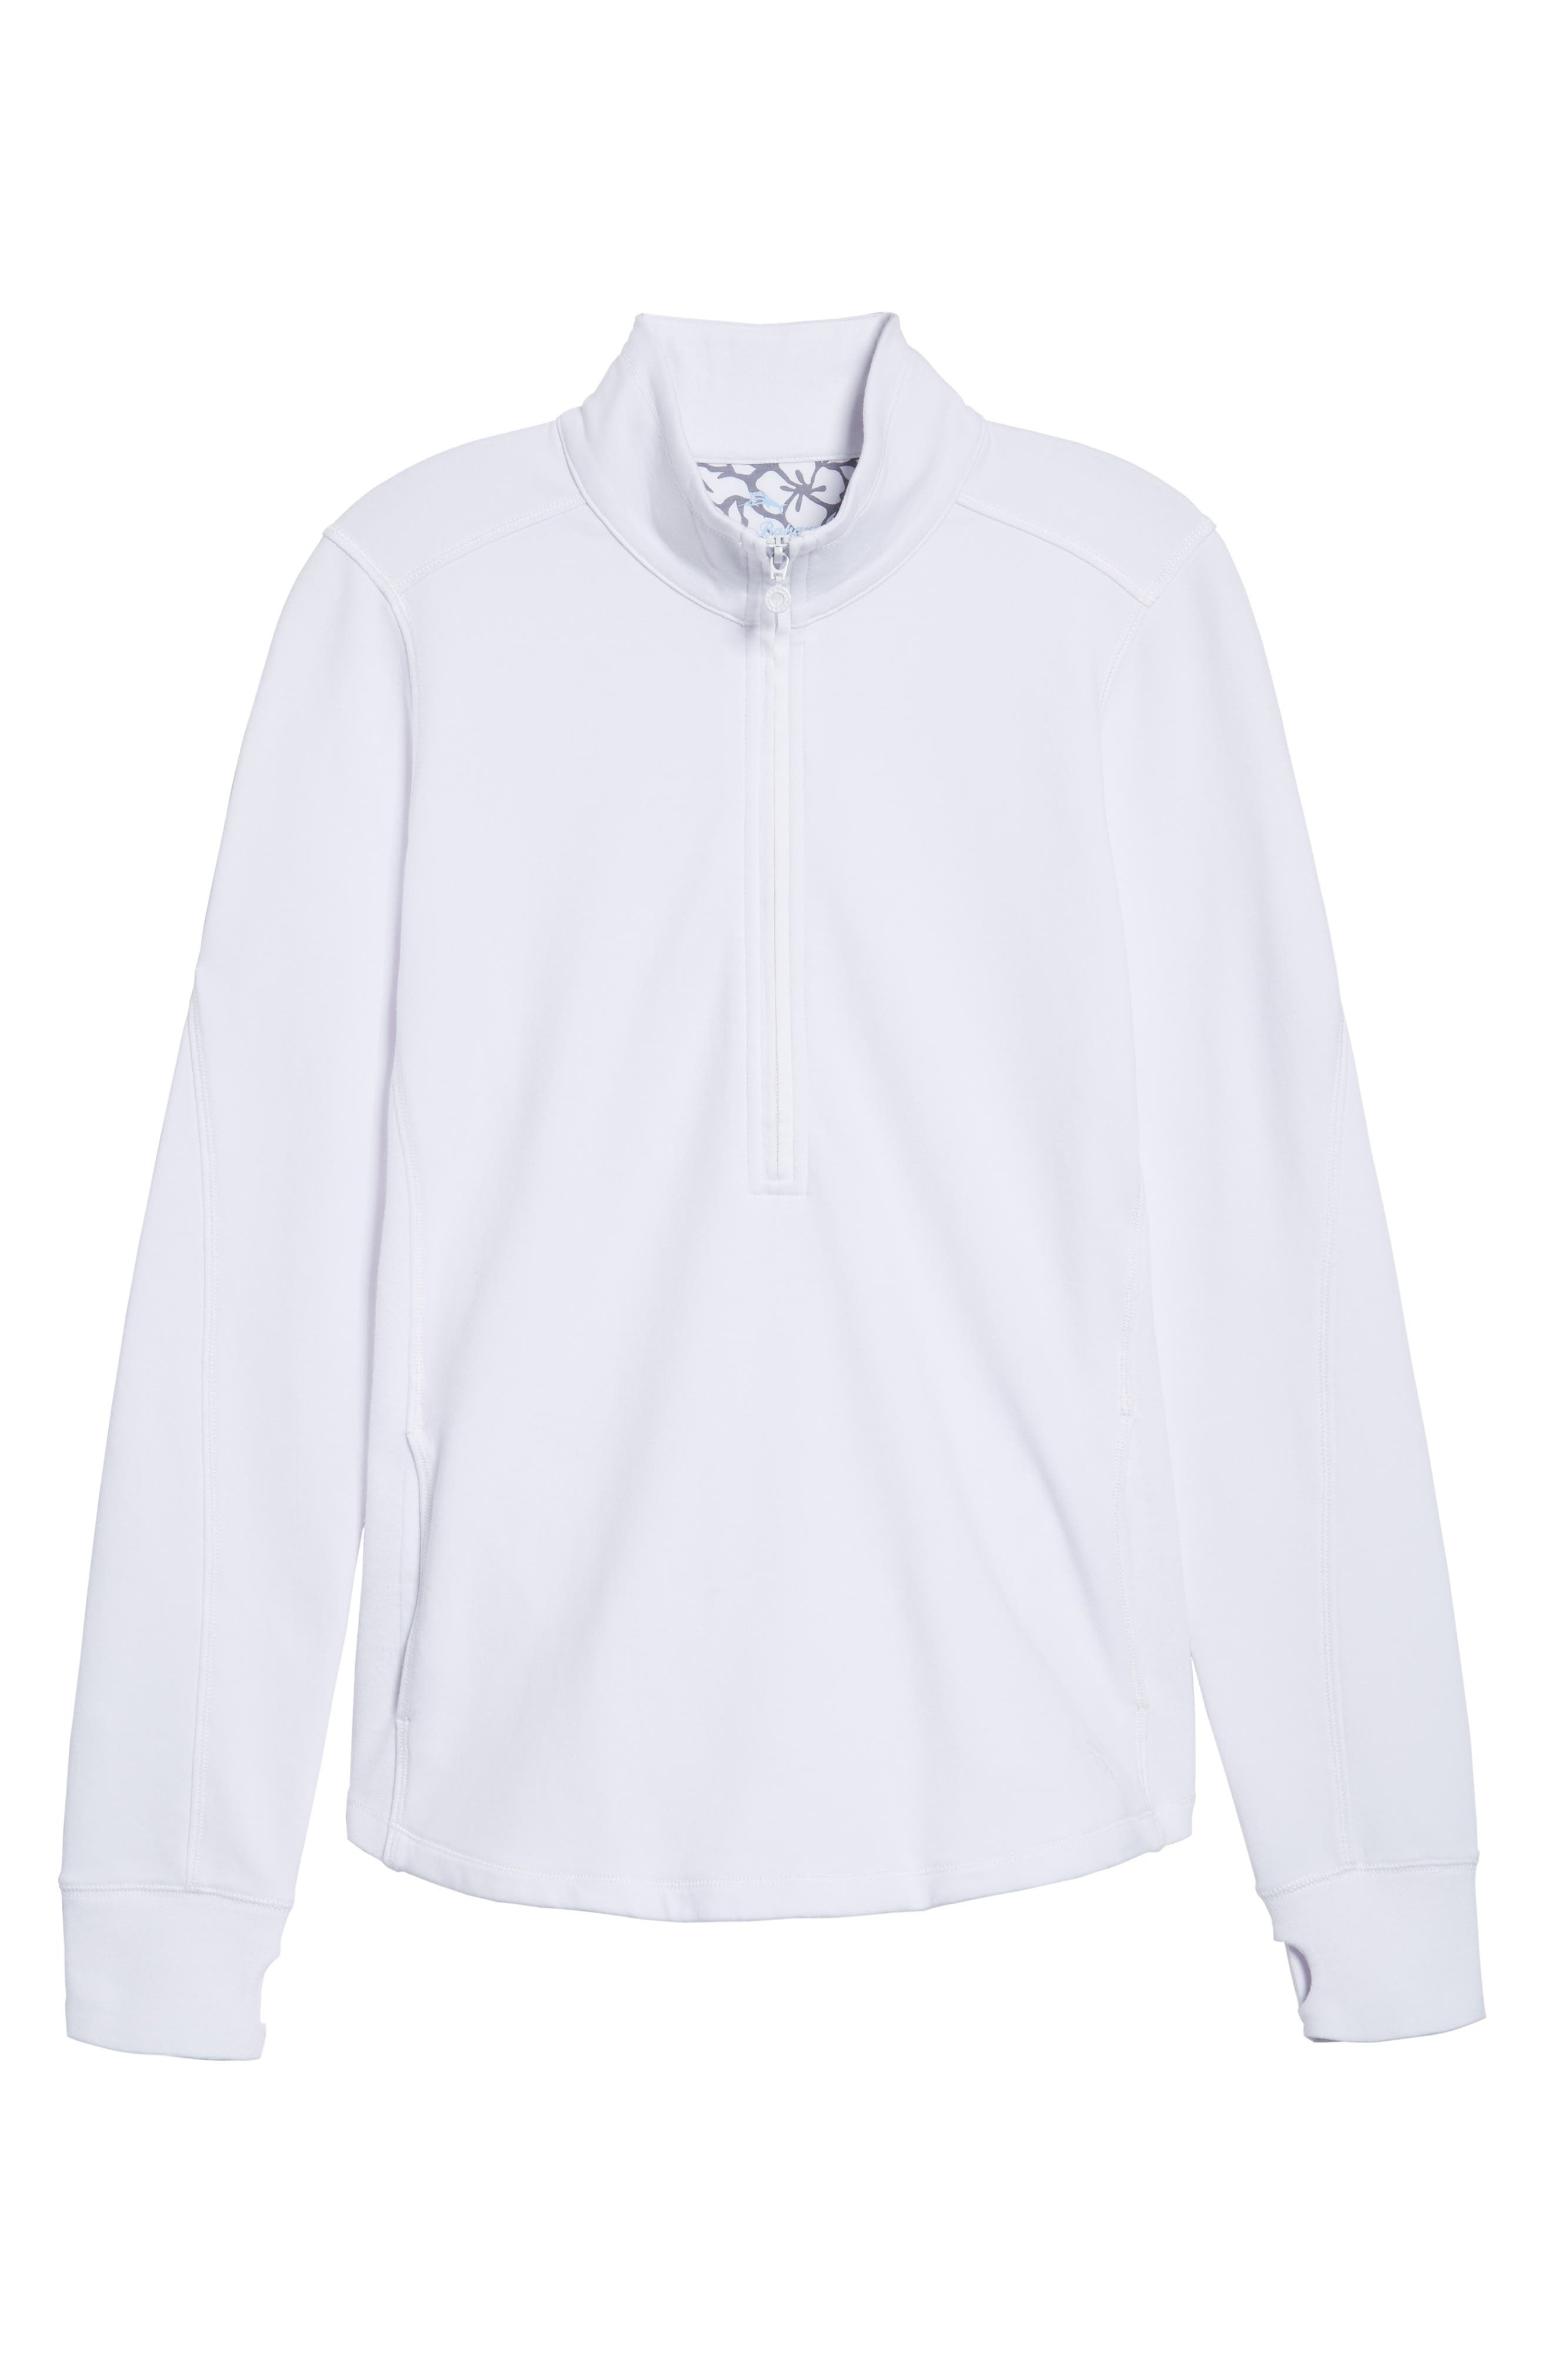 Jen and Terry Half Zip Top,                         Main,                         color, White